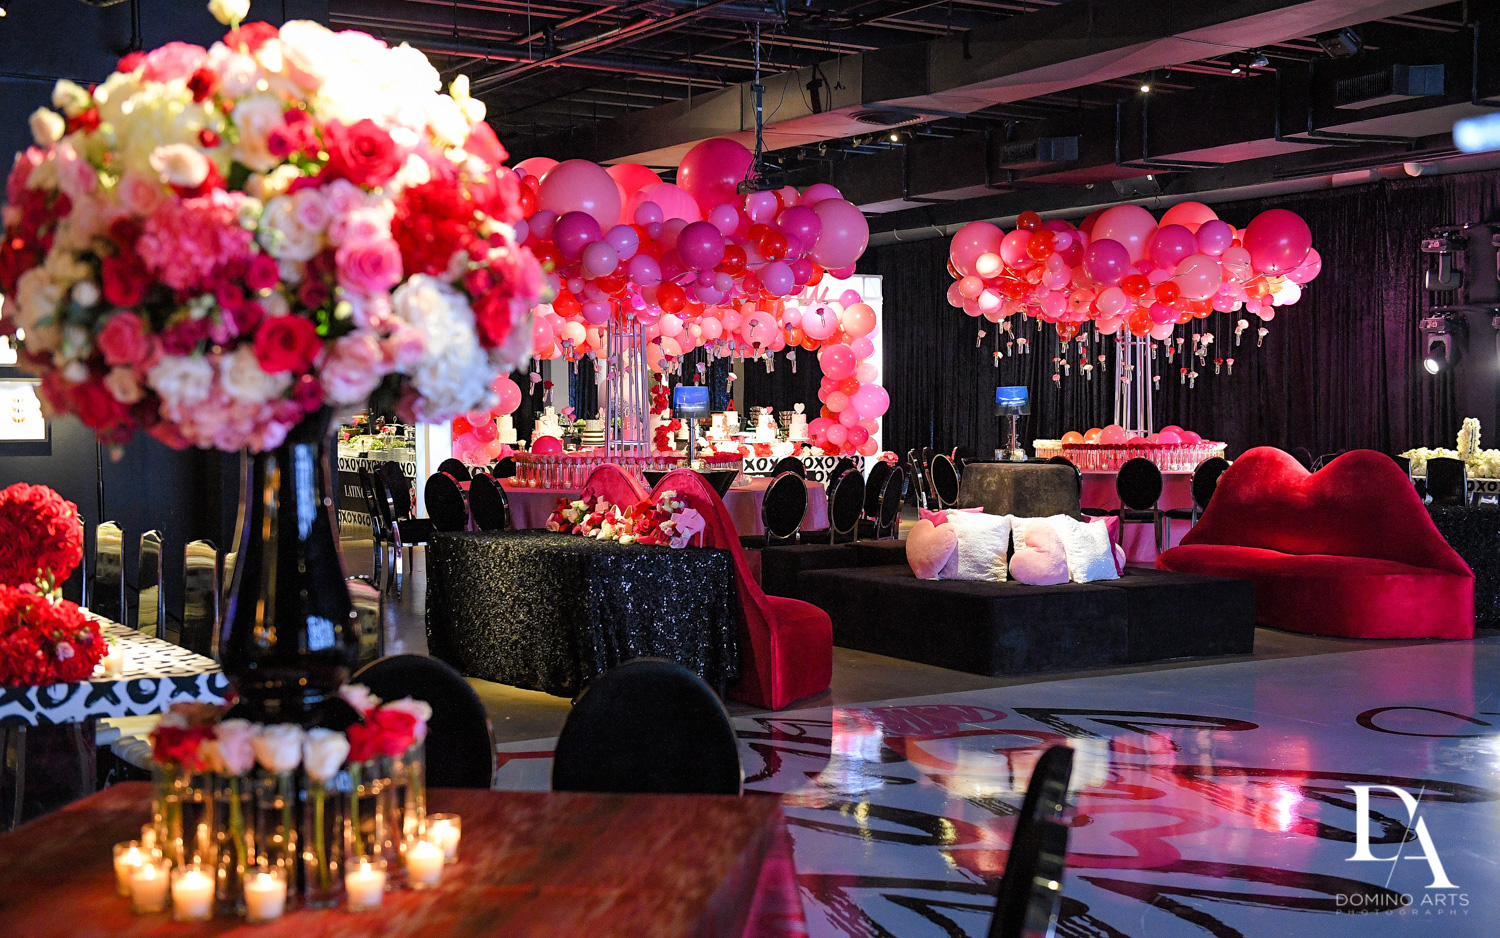 flower and balloon decor at Fashion Theme Bat Mitzvah at Gallery of Amazing Things by Domino Arts Photography